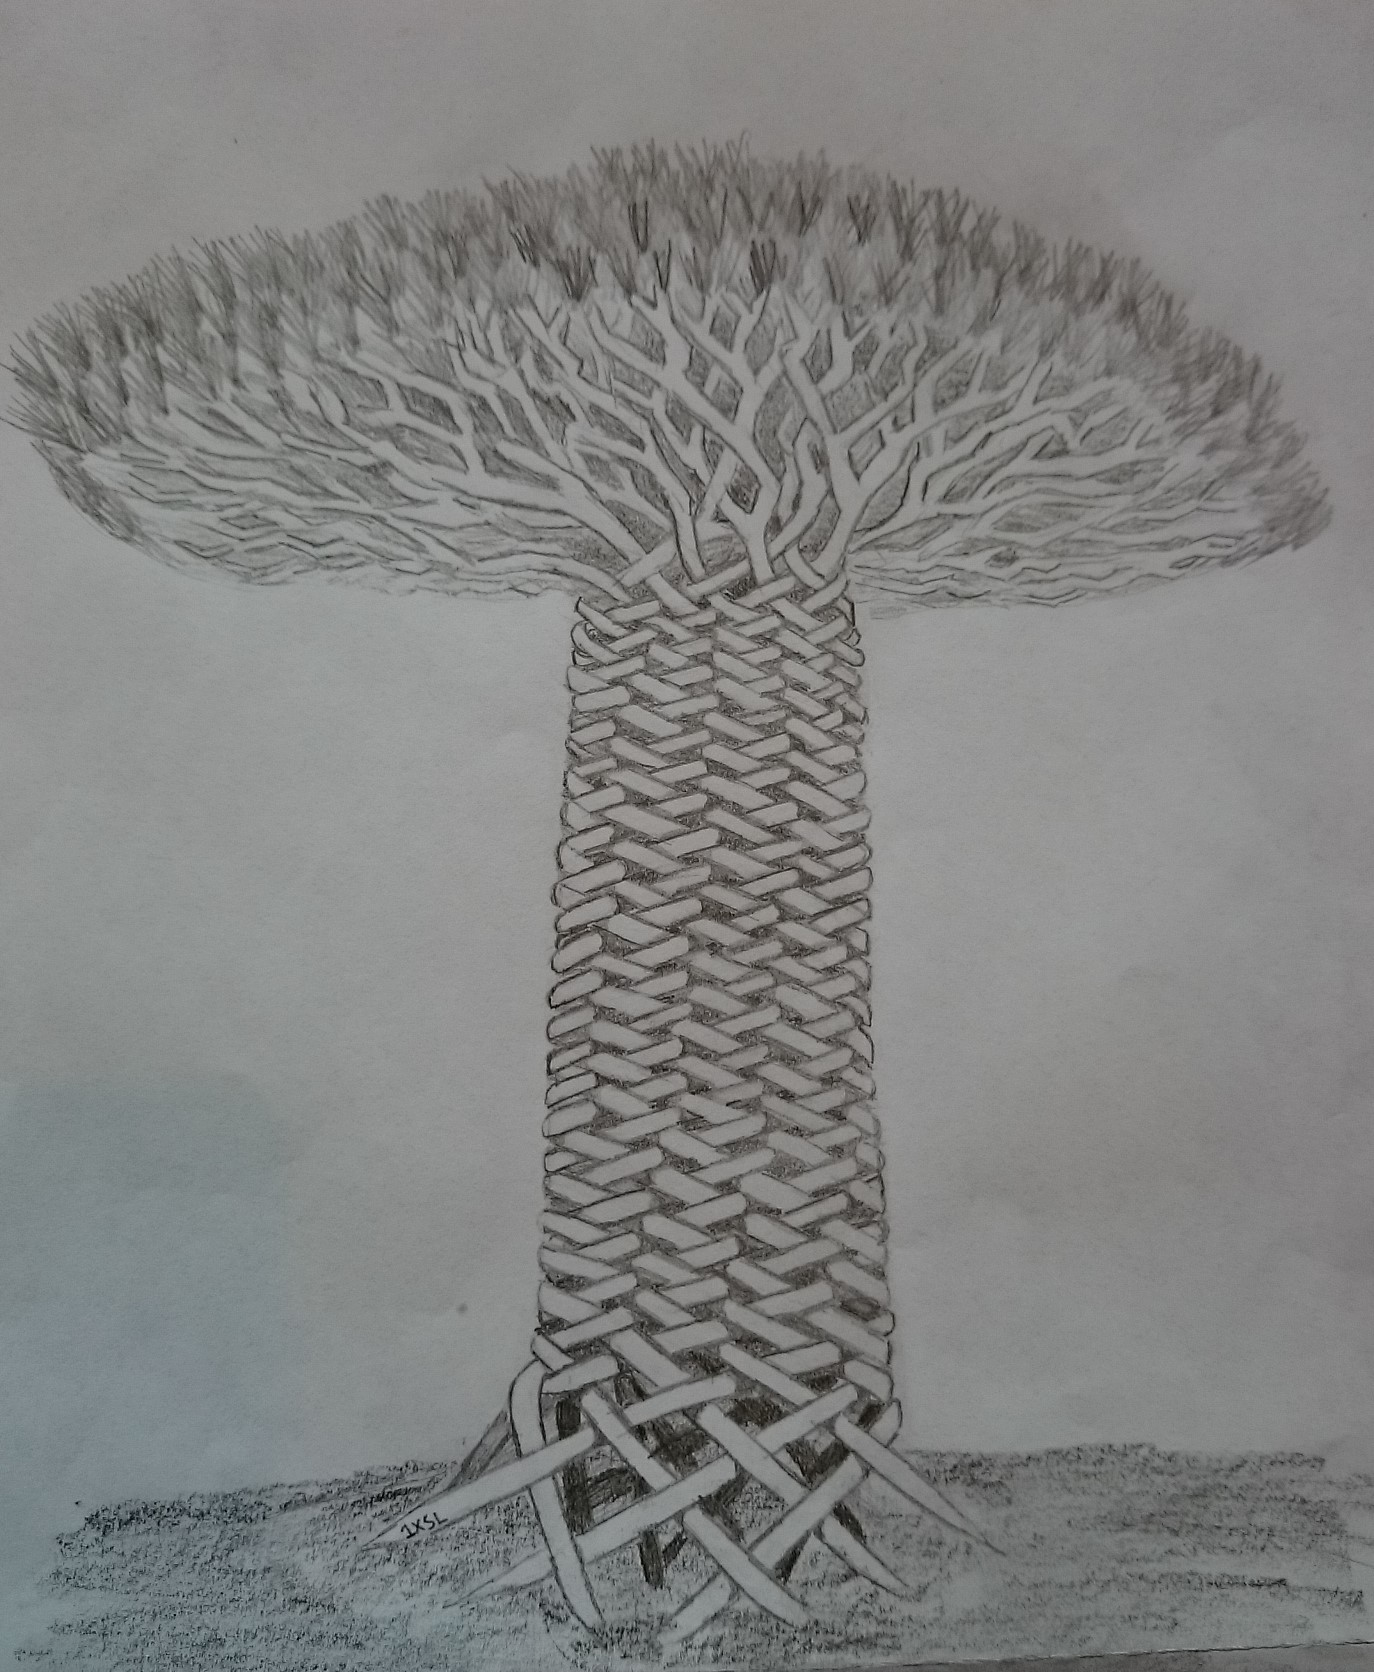 An incredibly detailed grey and white drawing of Jorbam, proud and tall, all her roots weaving together like an elaborate rope to form her branchless trunk, effortlessly blooming into a wide canopy topped with spiney leaves. By LM.